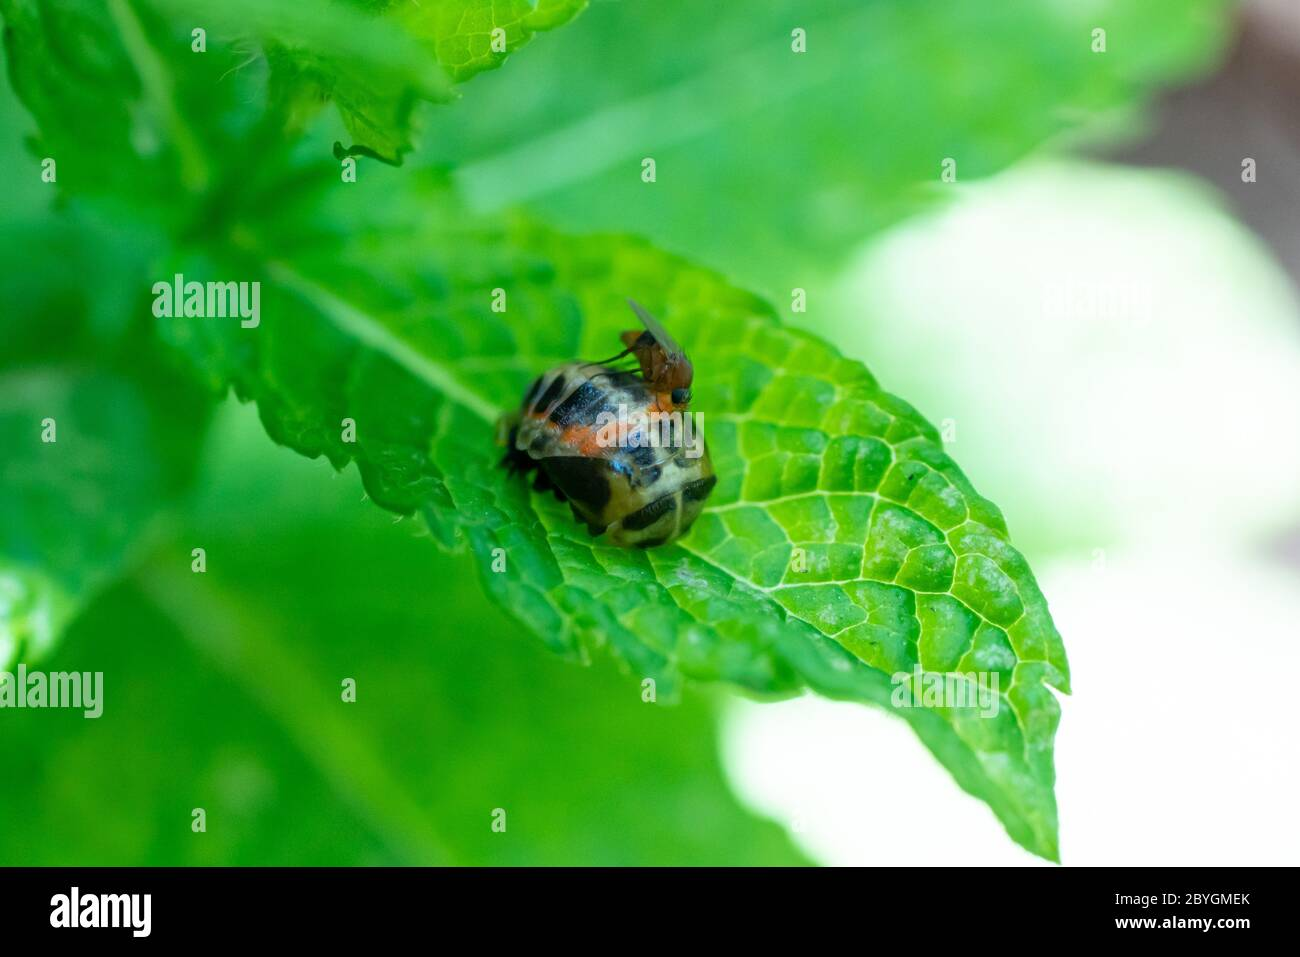 Pupation of a ladybug on a mint leaf in spring with a mosquito on it. Macro shot of living insect. Series image 7 of 9 Stock Photo